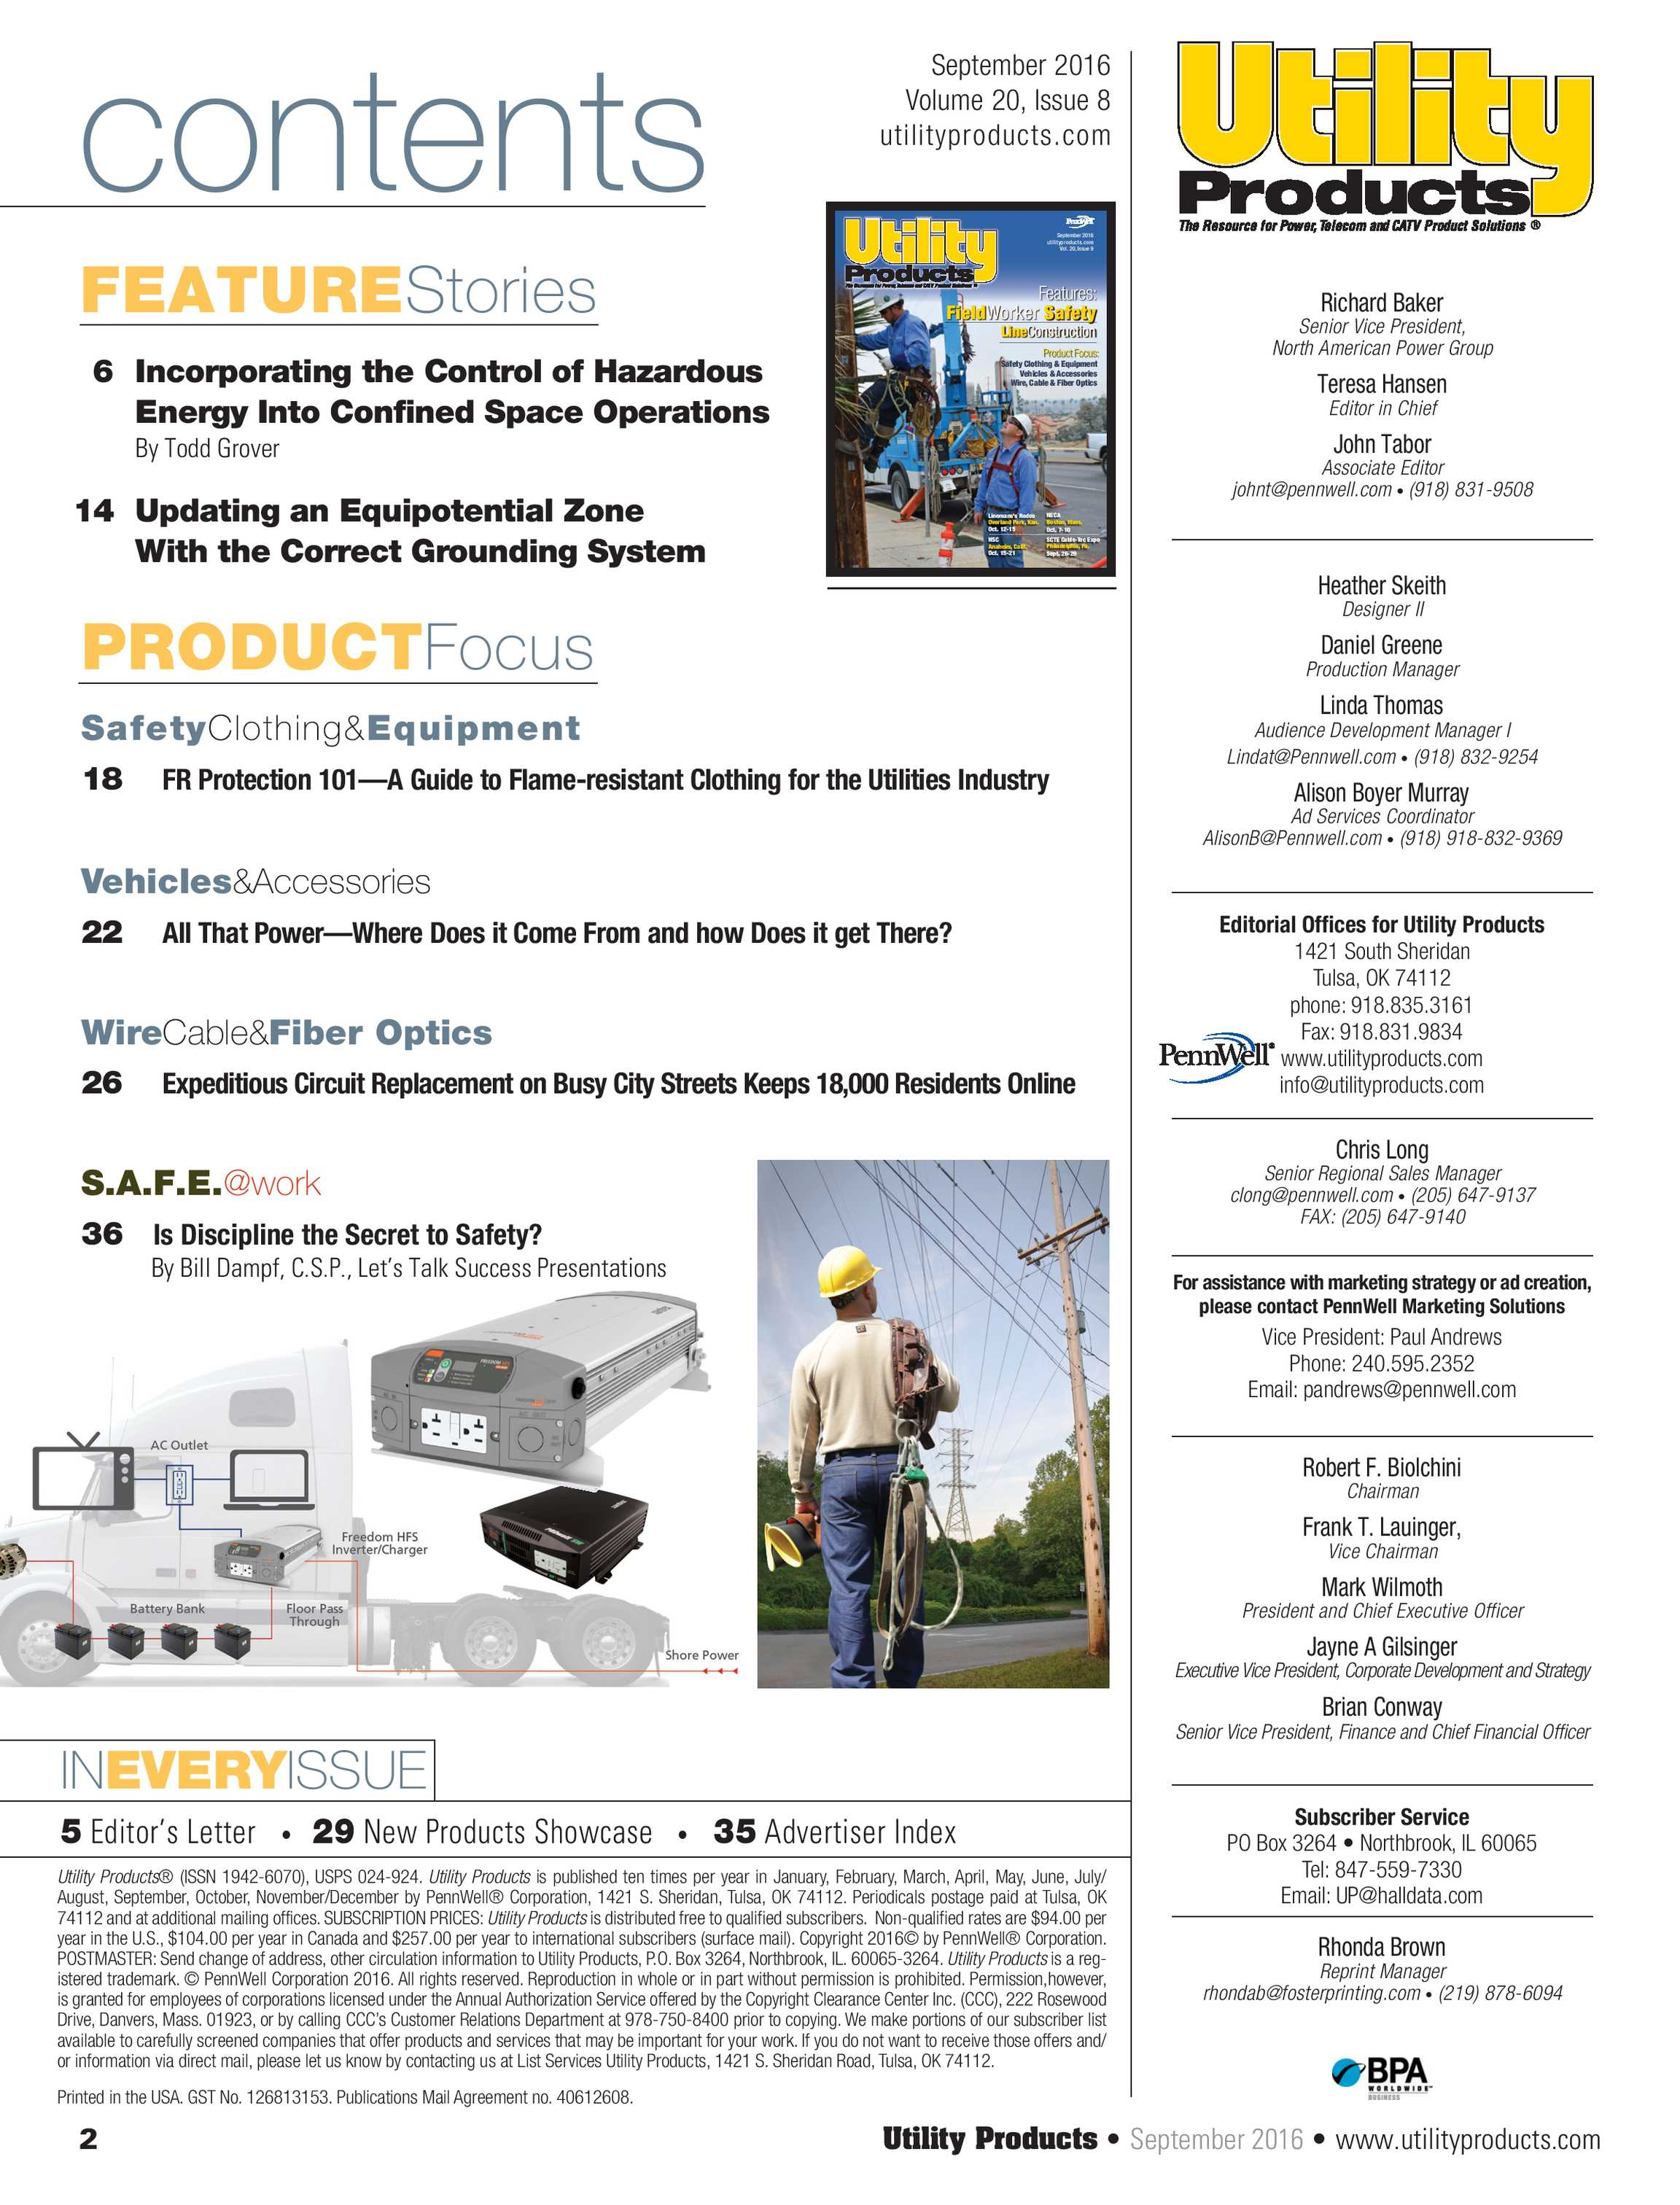 Utility Products - September 2016 - page 2